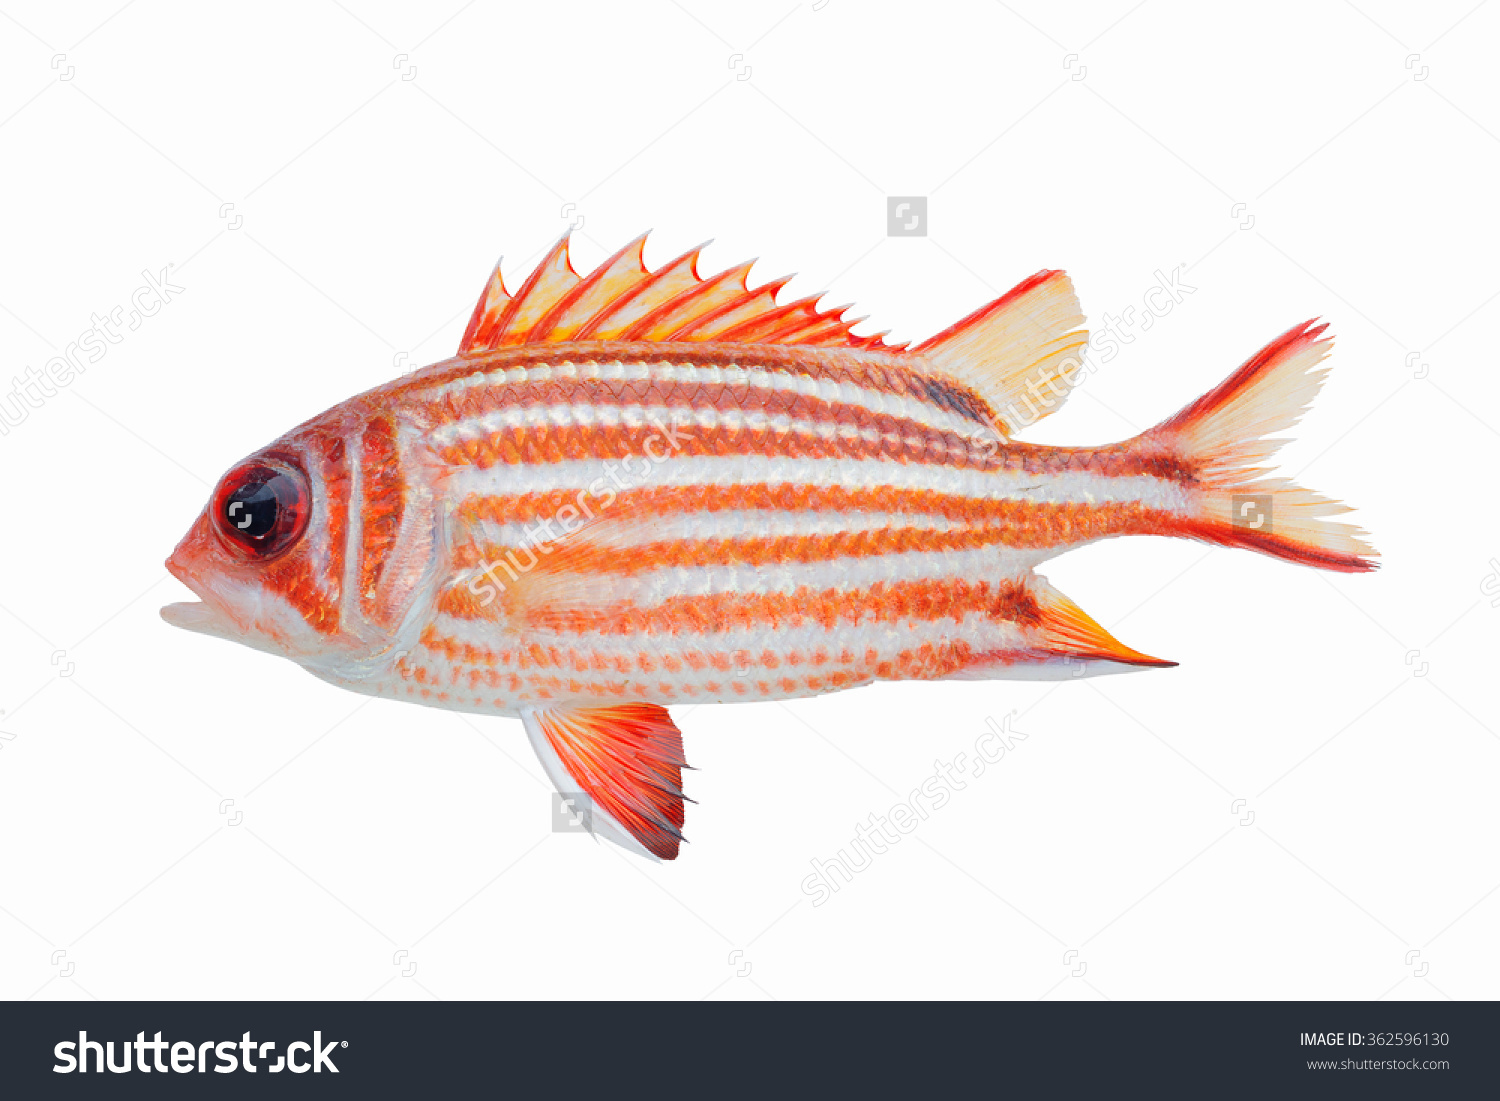 Squirrelfish clipart #2, Download drawings